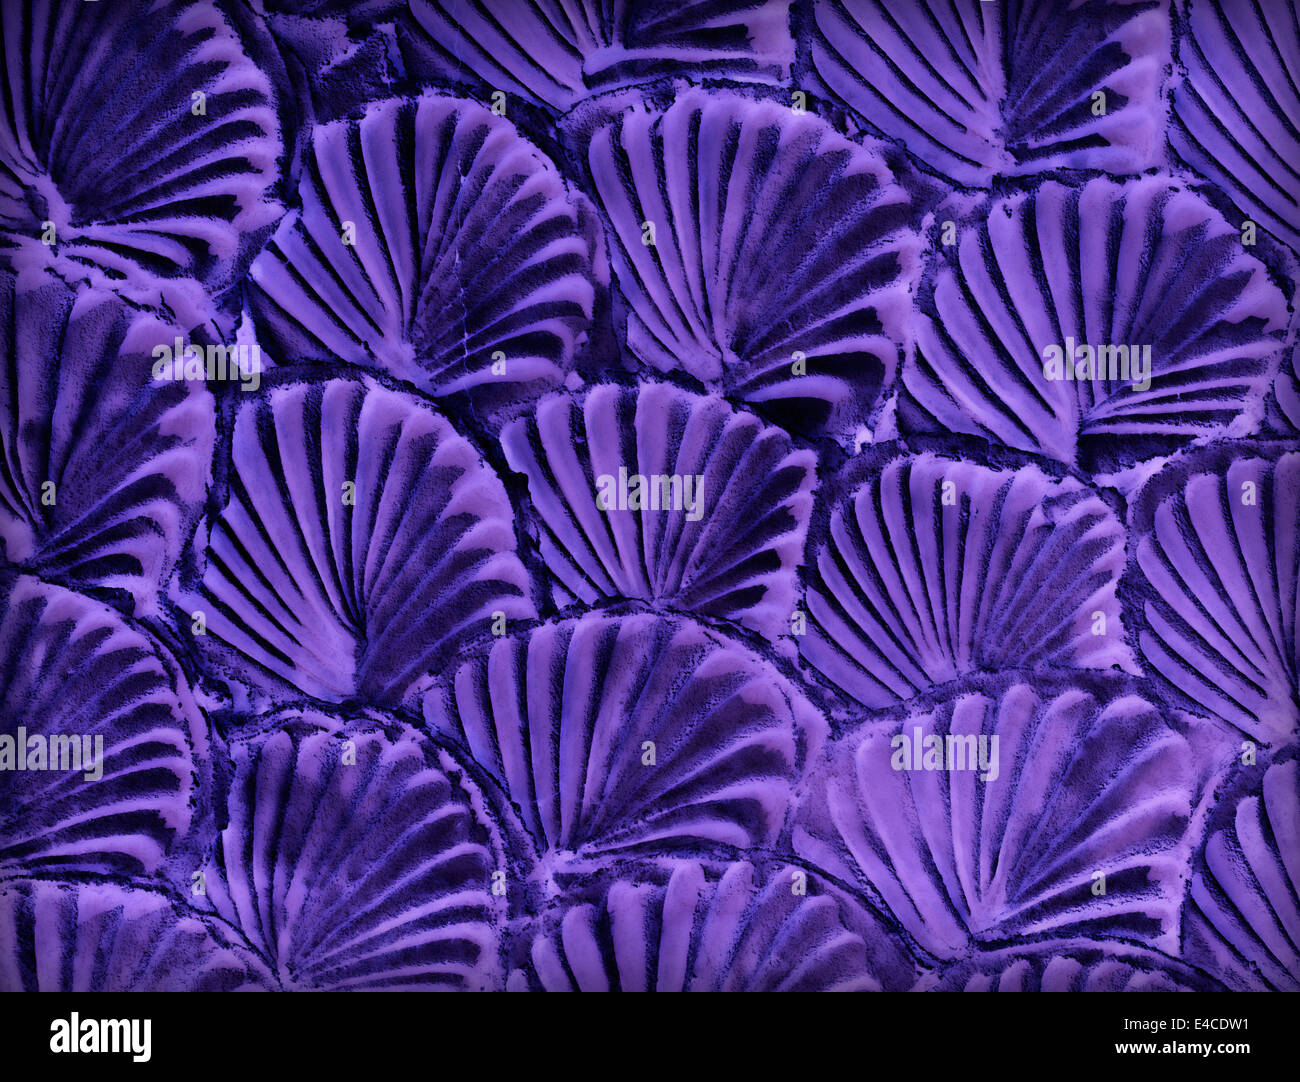 Purple Mortar Wall Texture Background Aesthetic Stock Photo